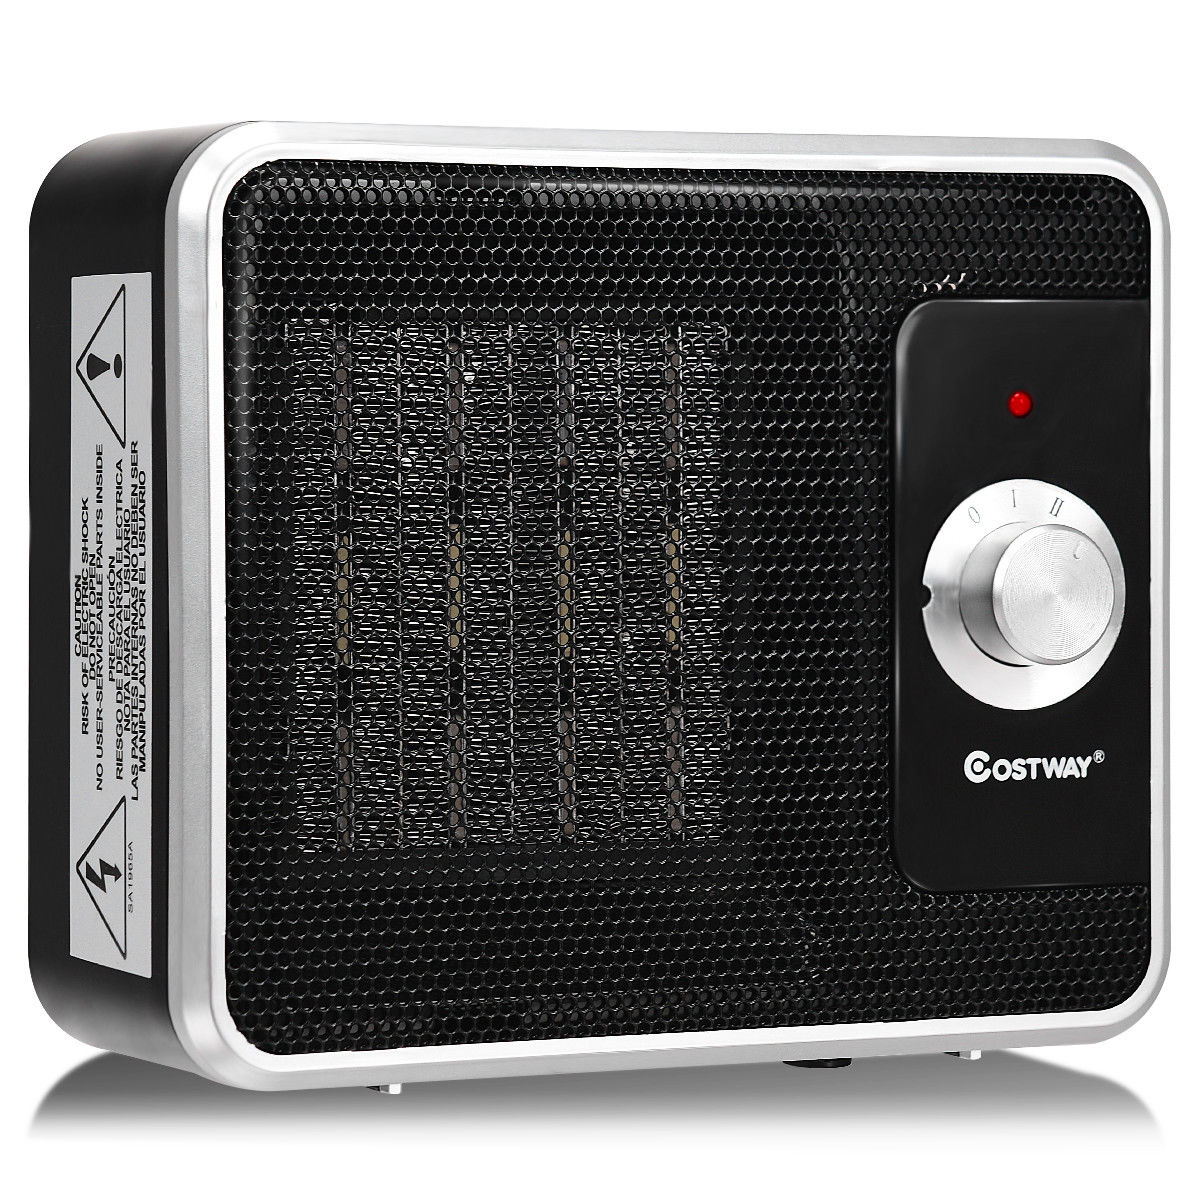 Costway 1200W Portable Electric PTC Space Heater Safety Shut-Off Tilt Protection Office